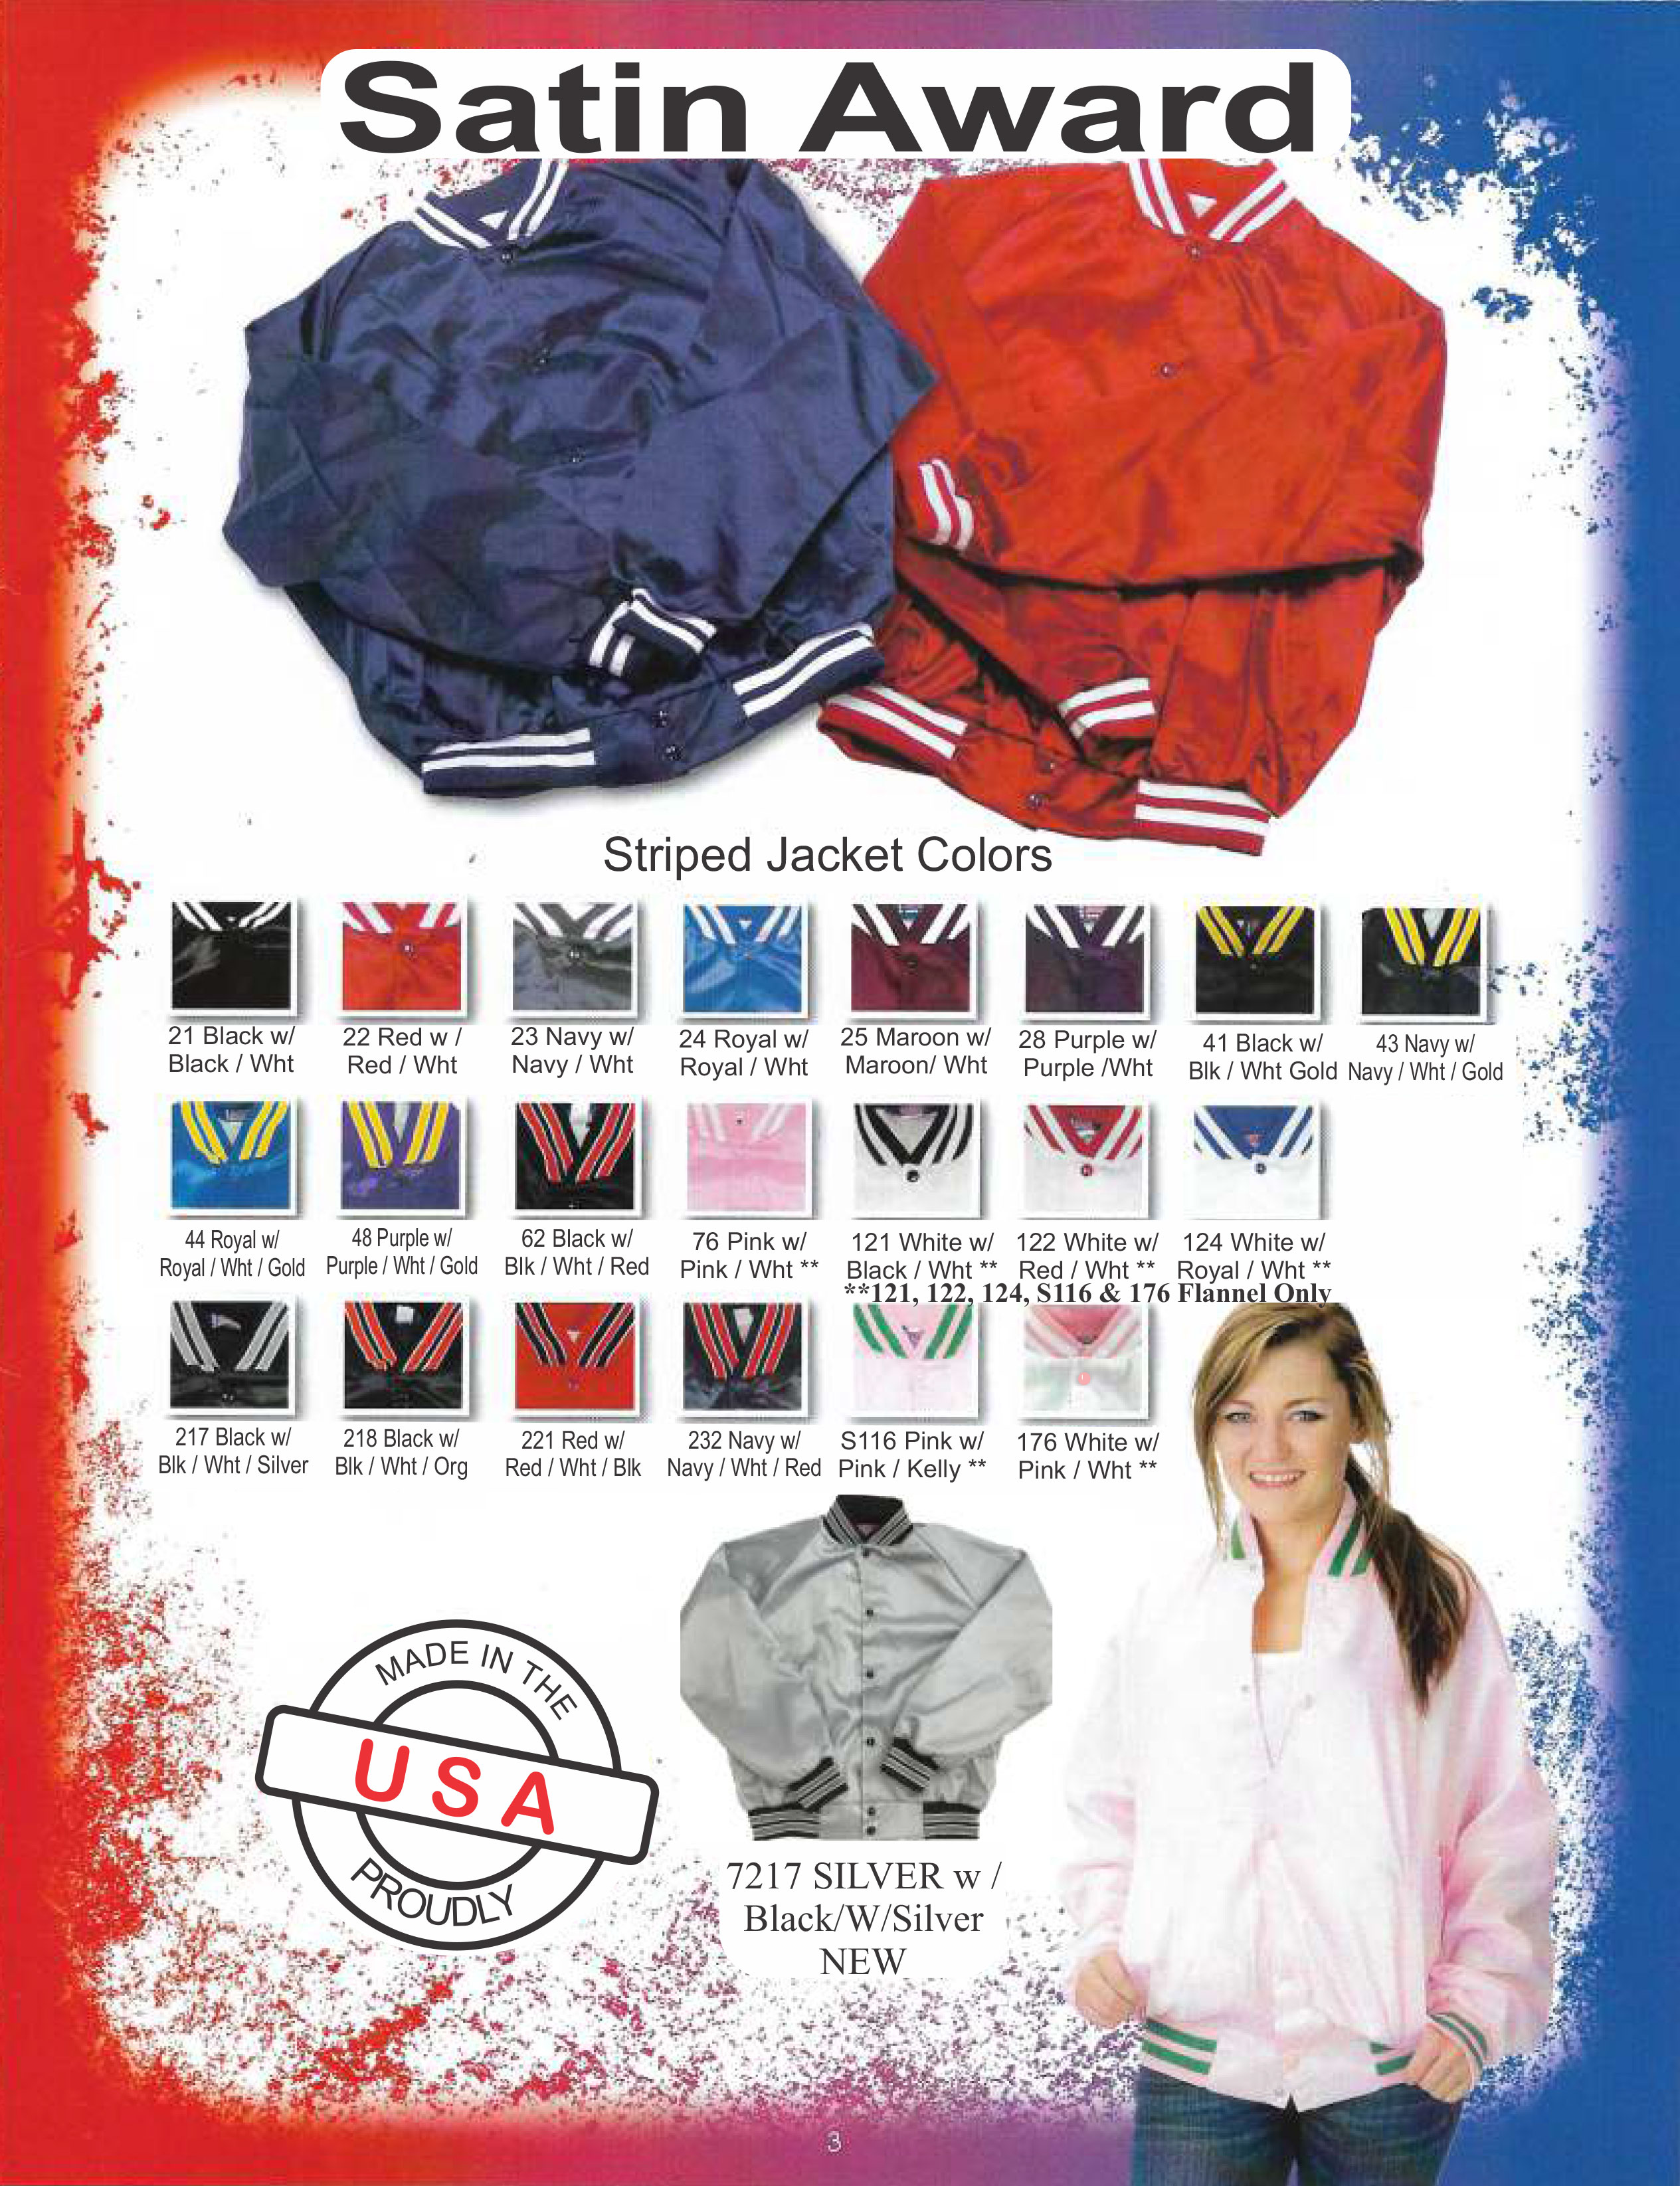 Satin Award Jacket Colors